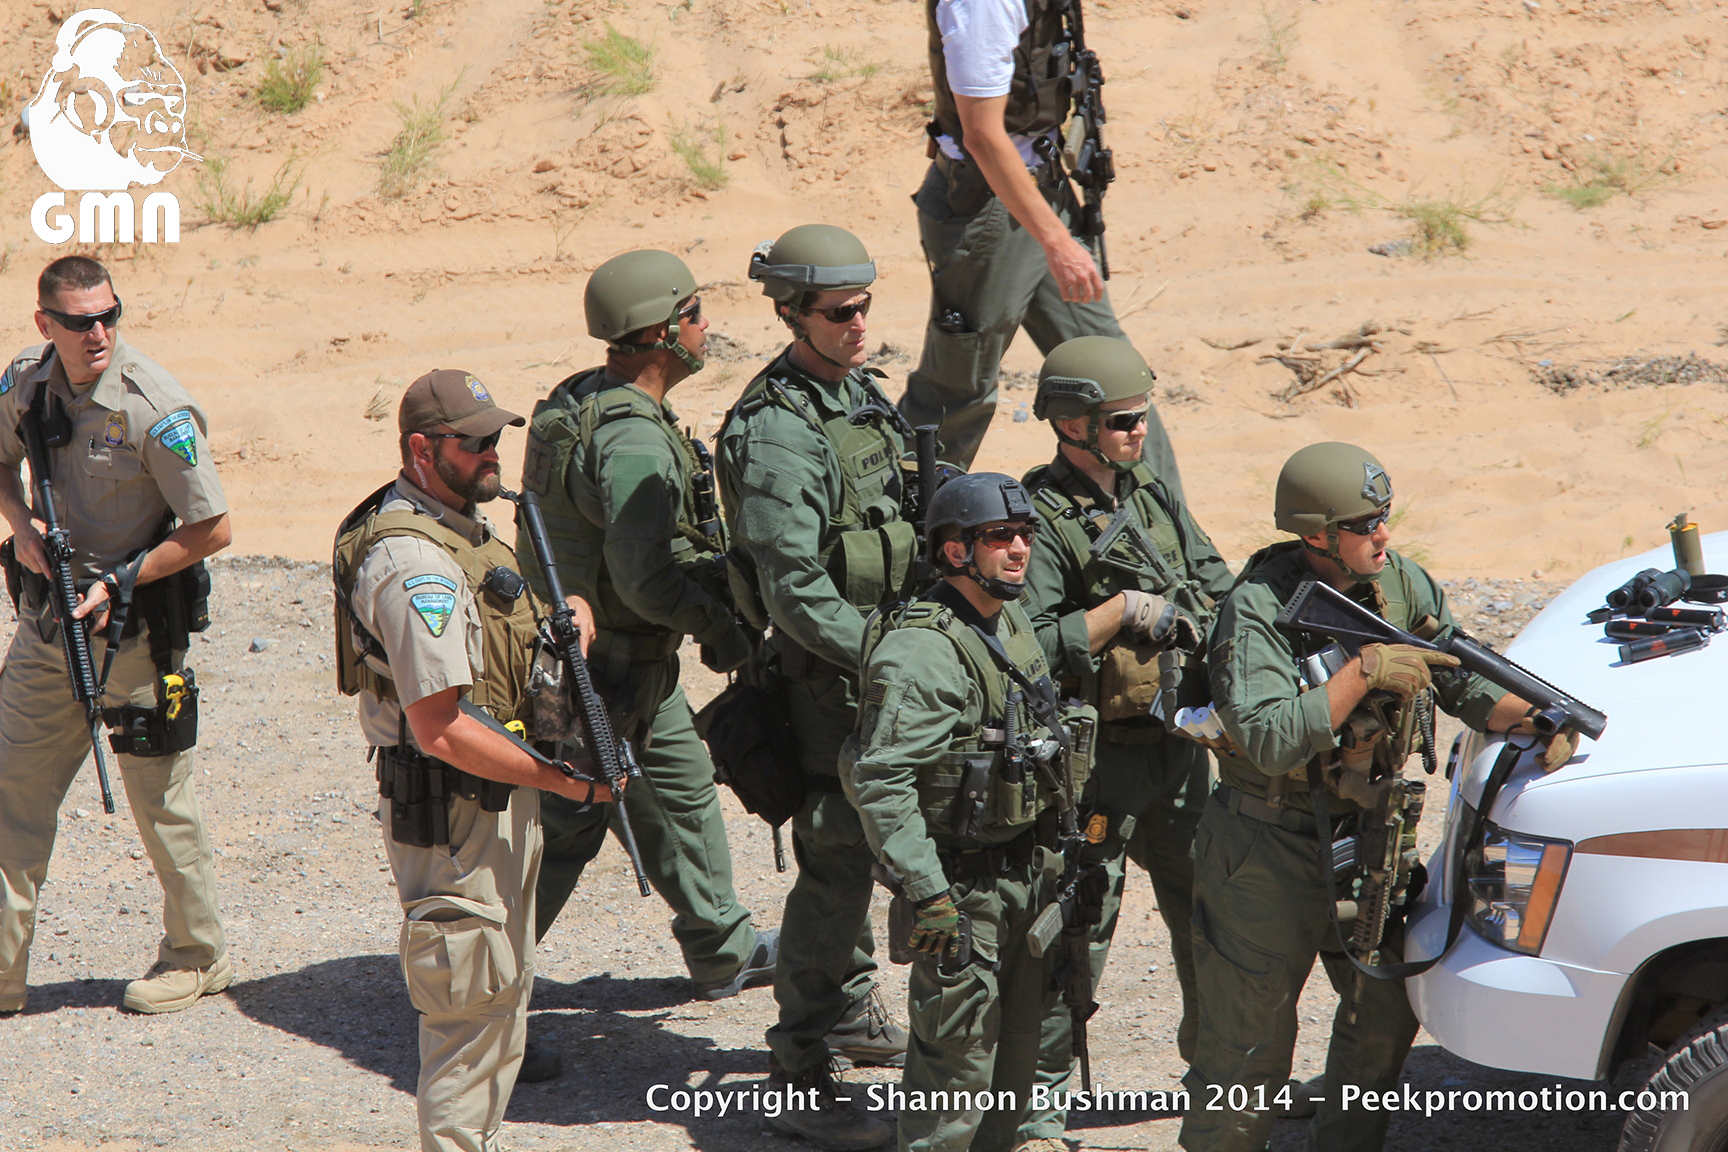 21WIREu-Bundy-Fed-Standoff-April-12-2014-Copyright-GMN